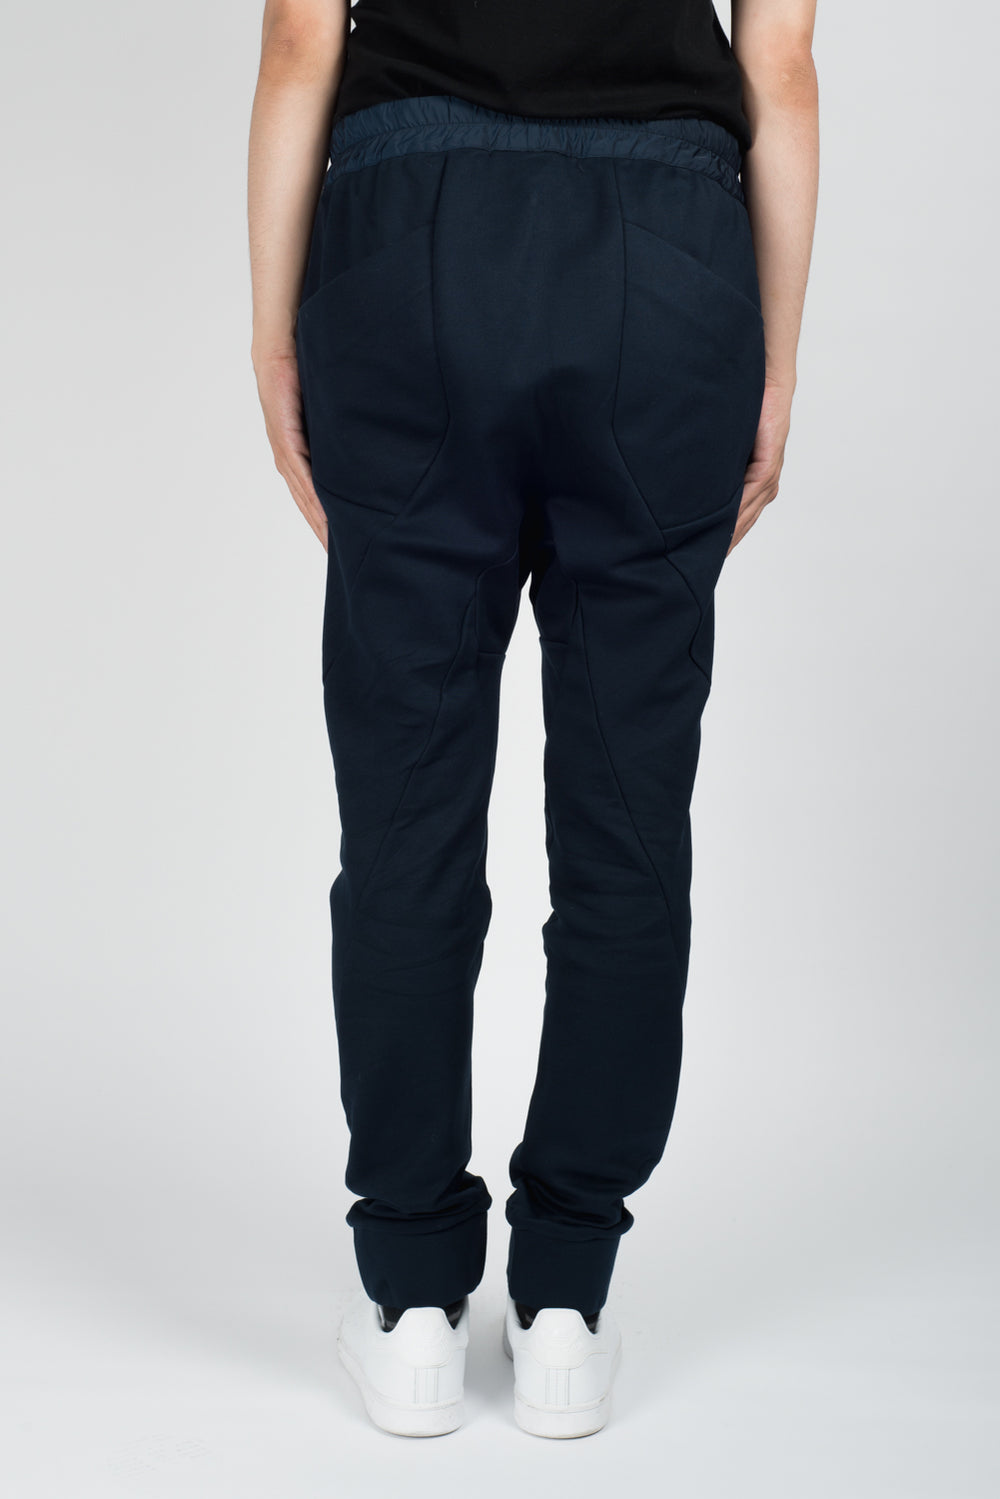 Les Benjamins Yekeo2 Trousers In Navy